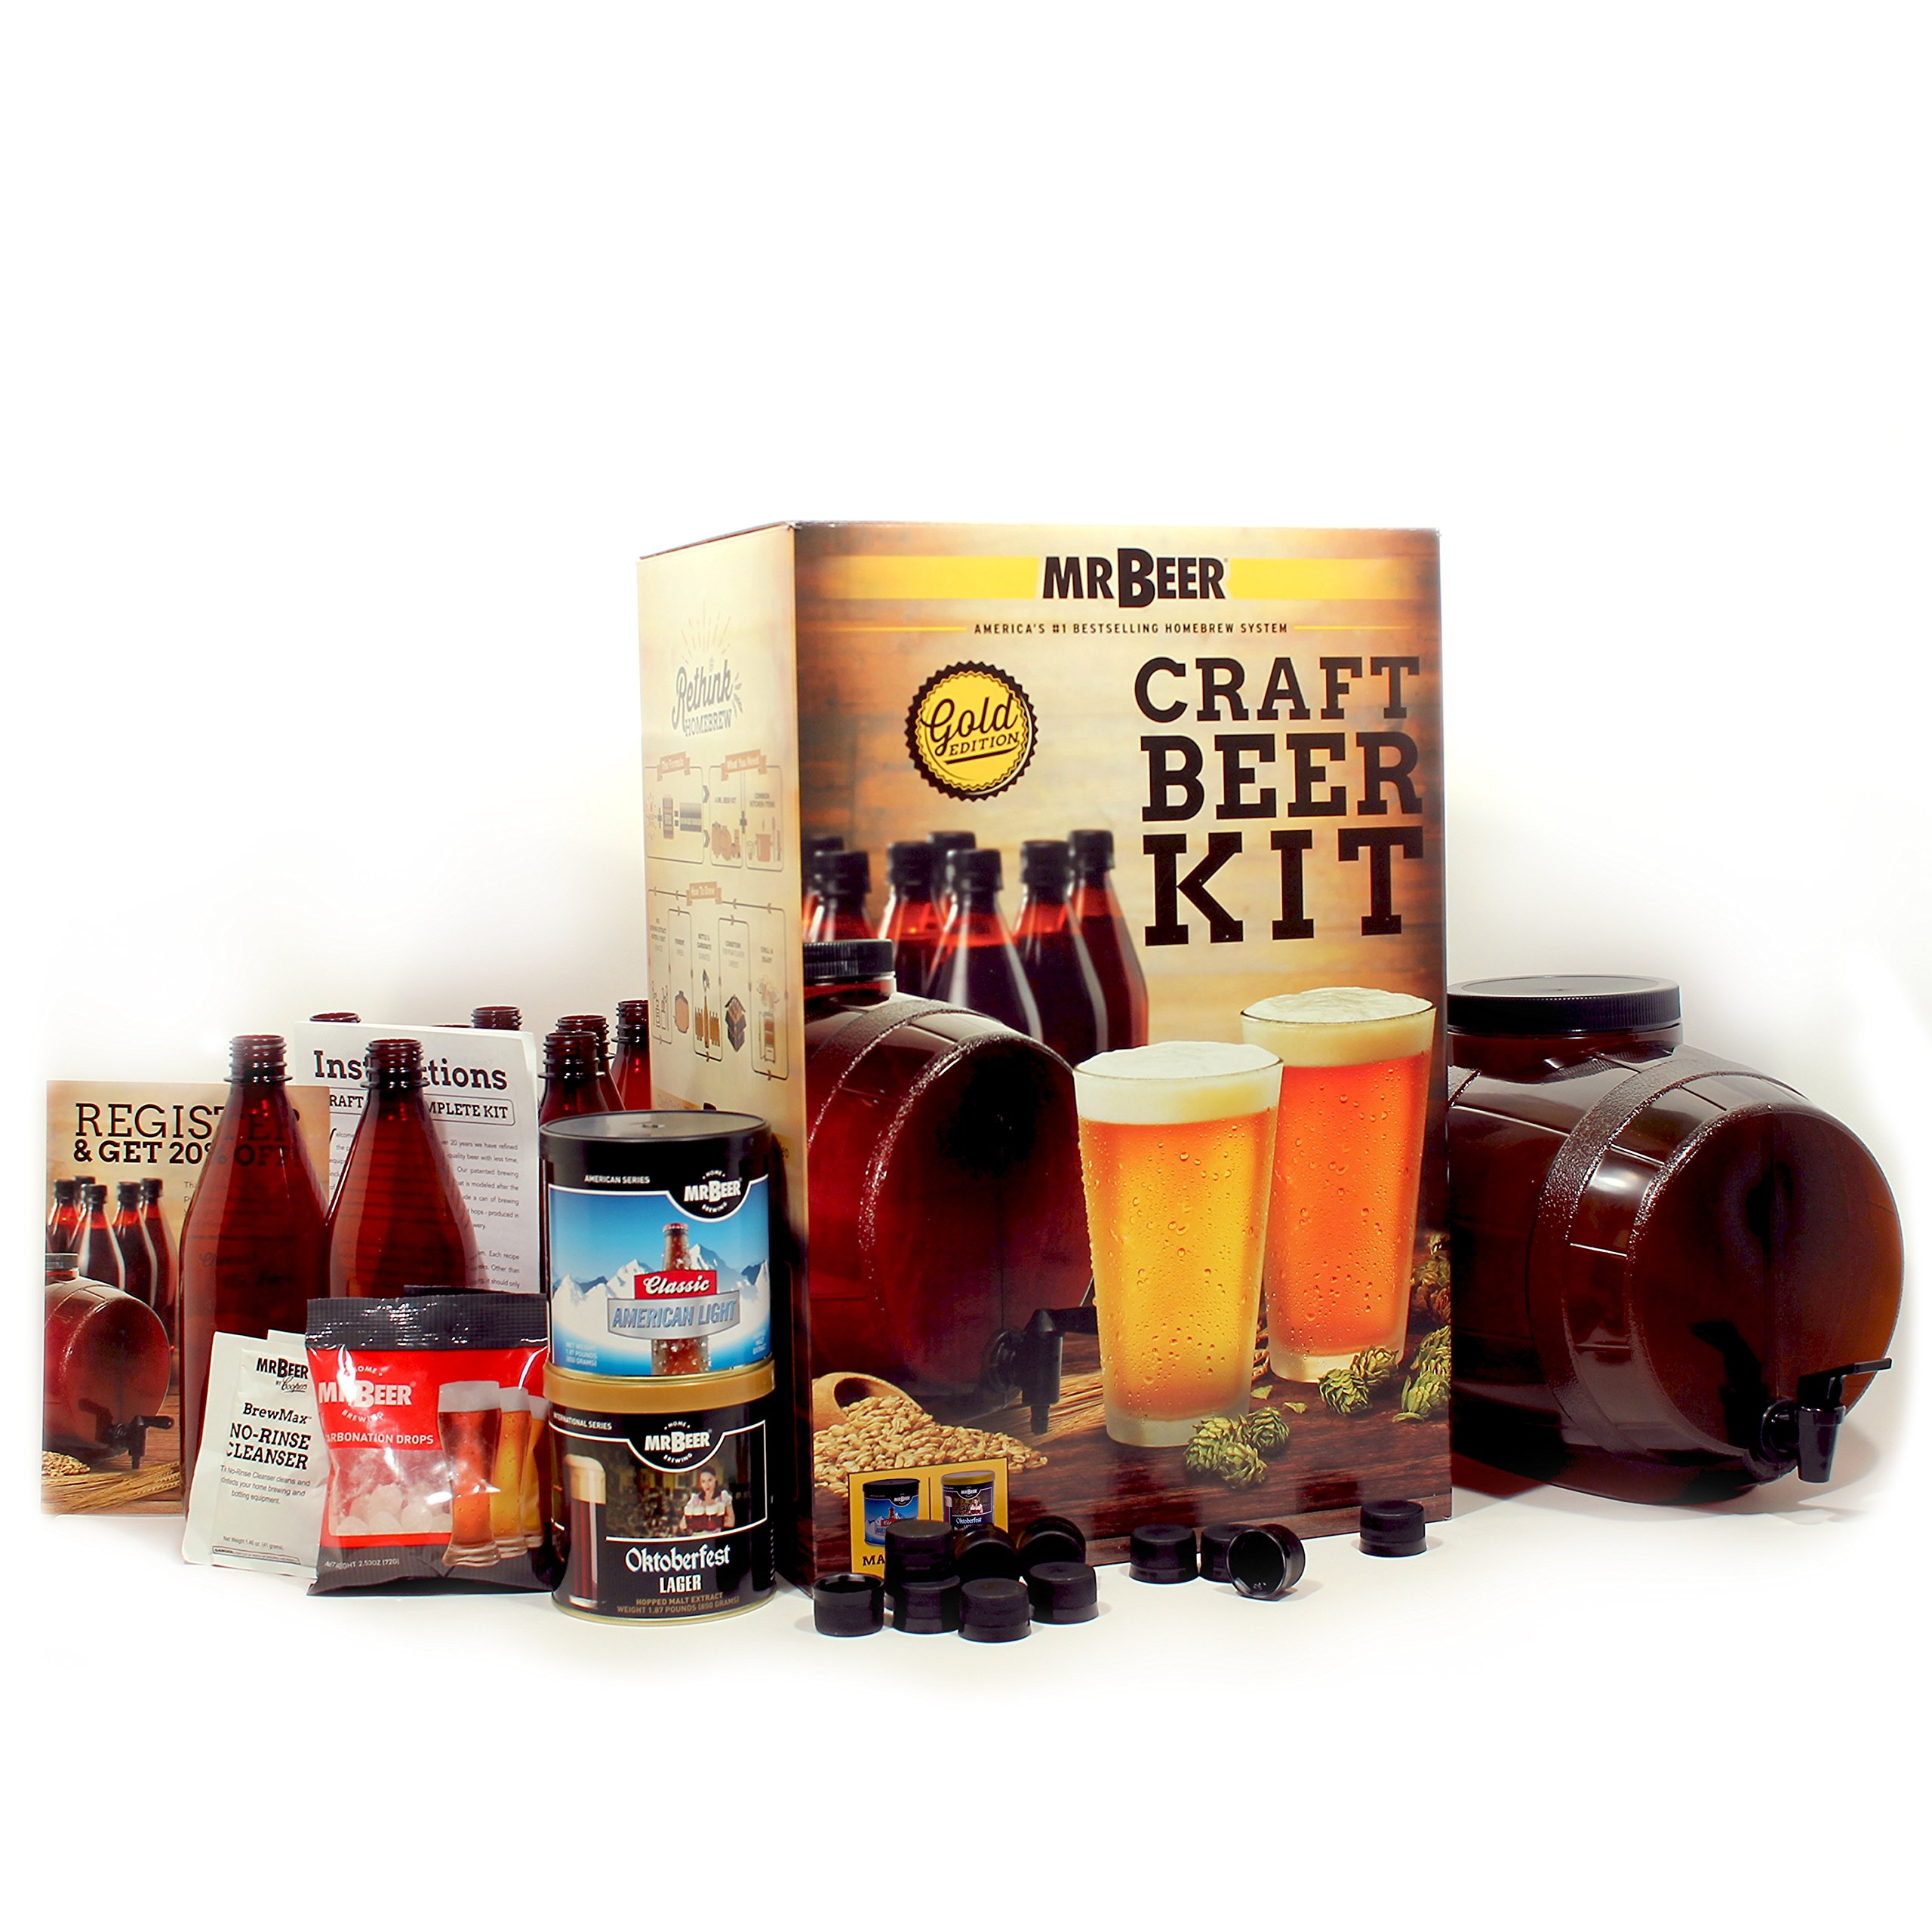 Mr. Beer 2 Gallon Complete Starter Beer Making Kit Perfect for Beginners, Designed for Quick and Efficient Homebrewing, Premium Gold Edition by Mr. Beer